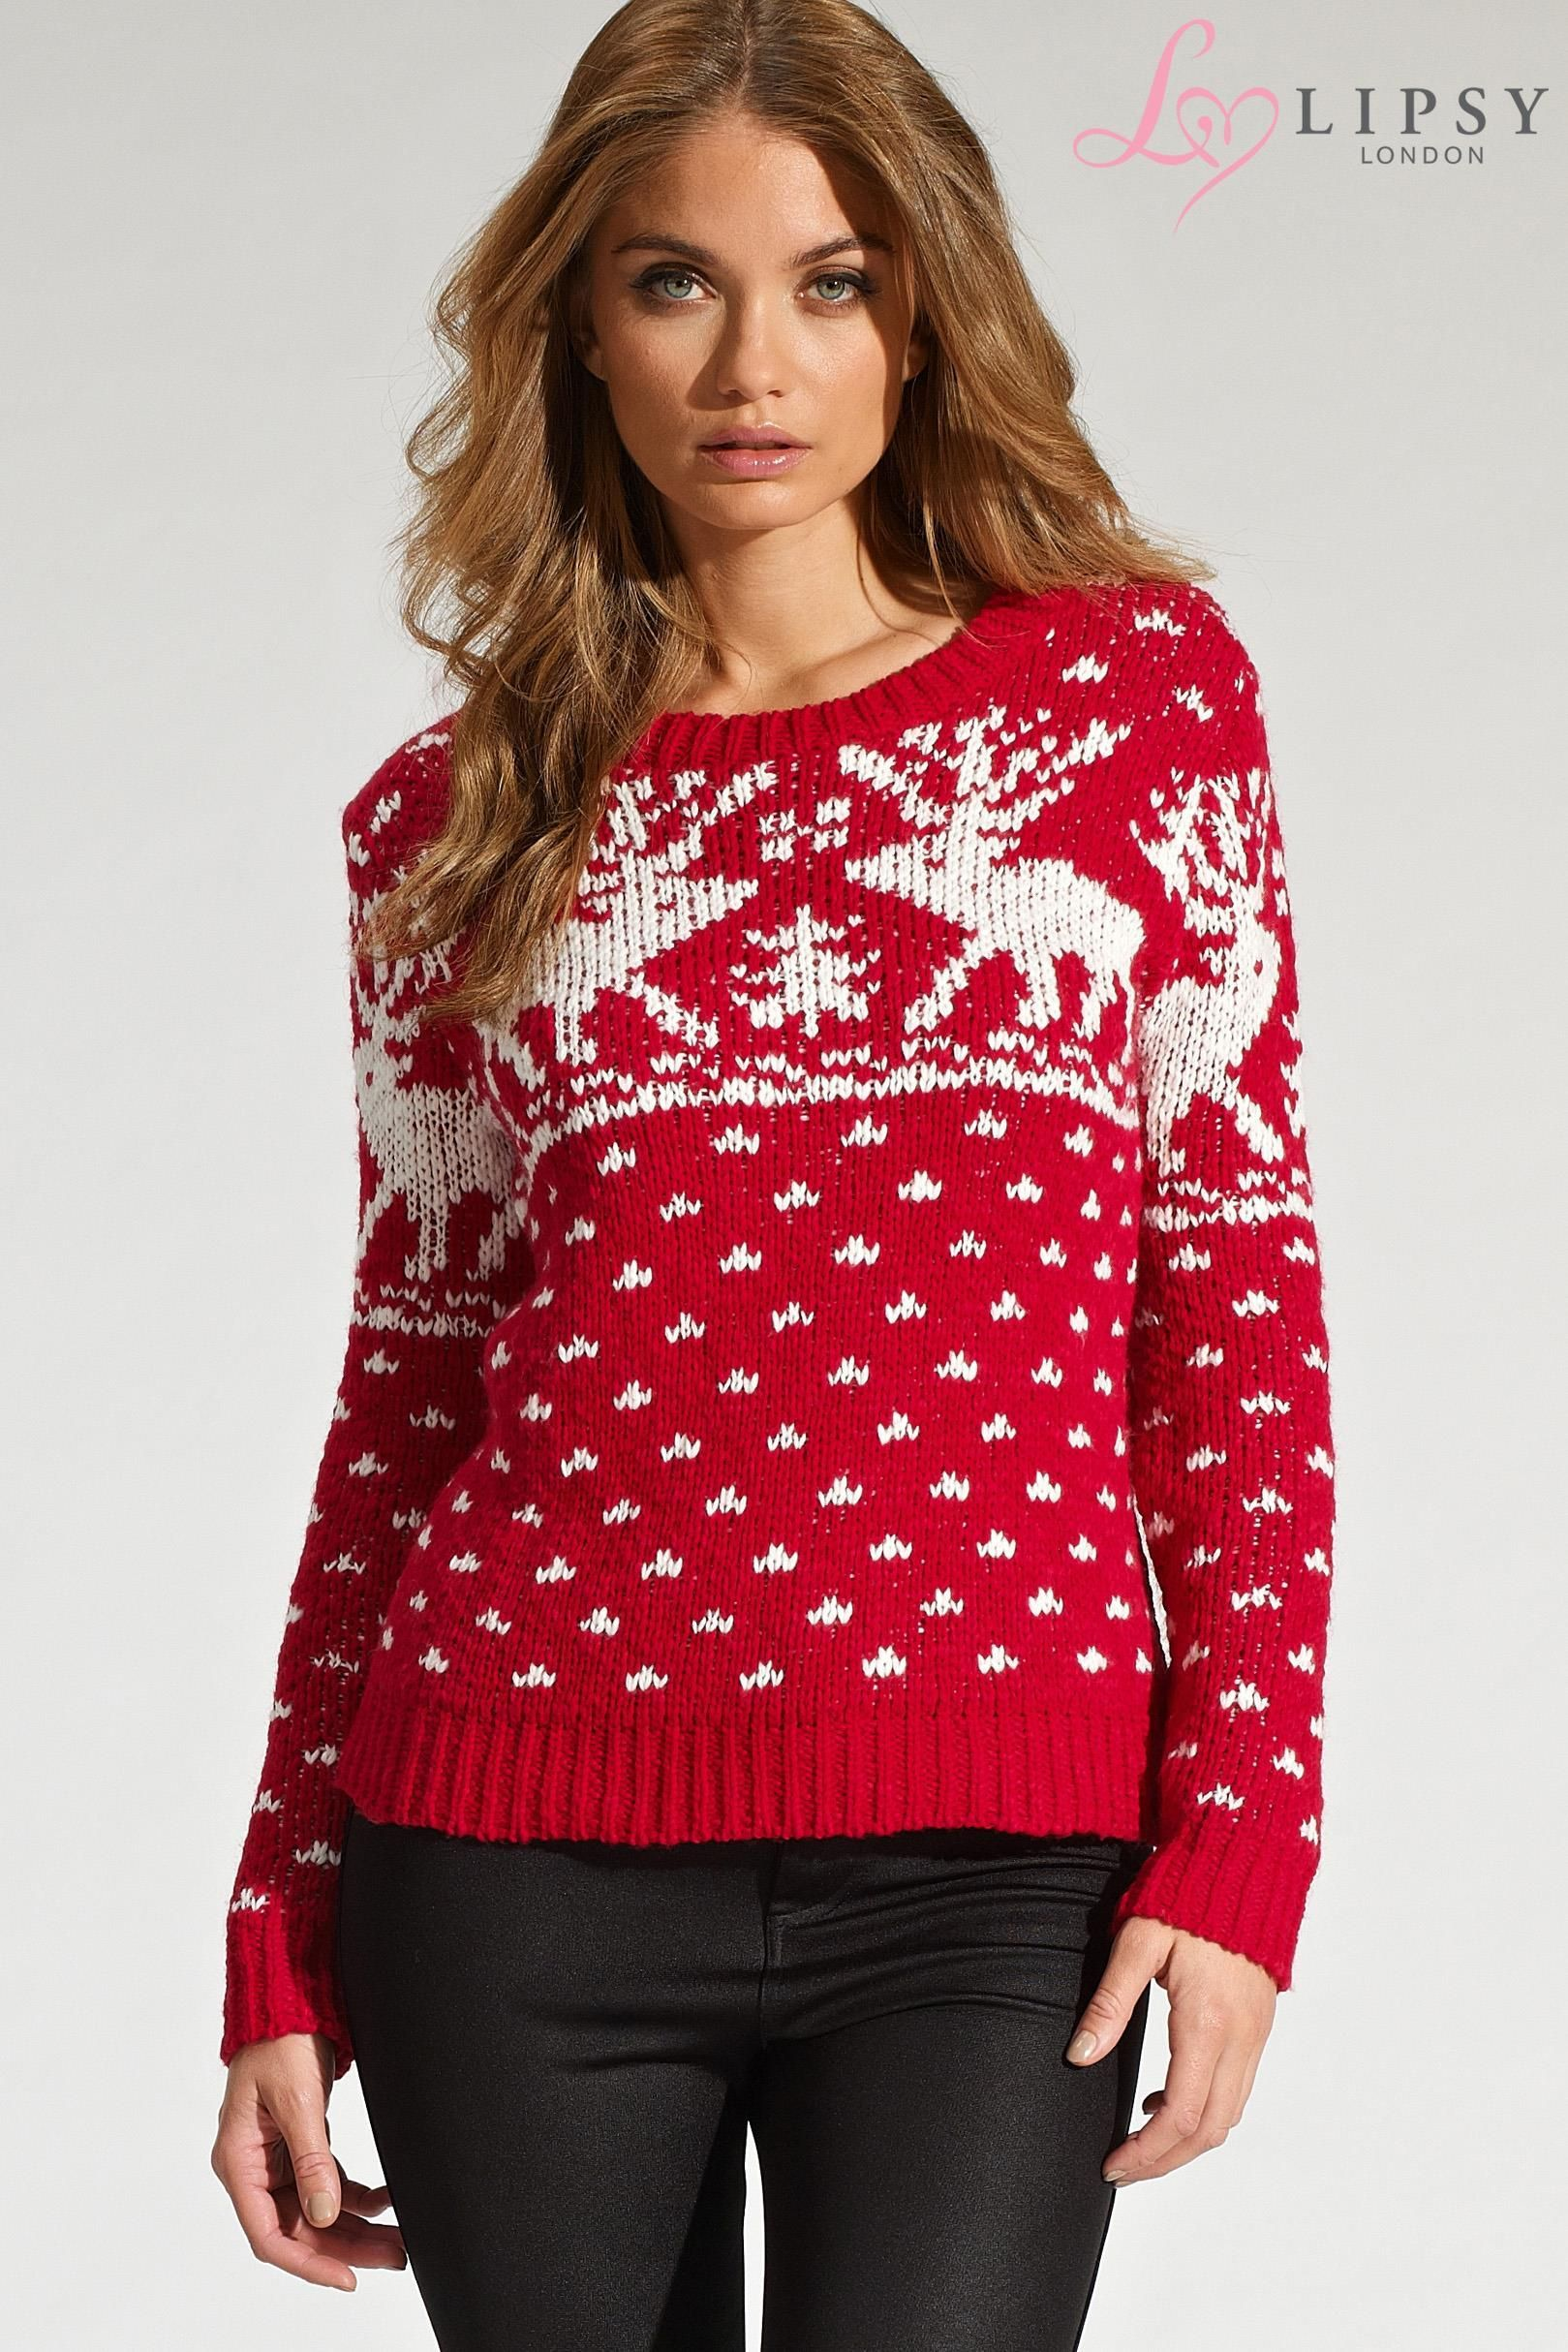 Buy Lipsy Reindeer Snow Jumper from the Next UK online